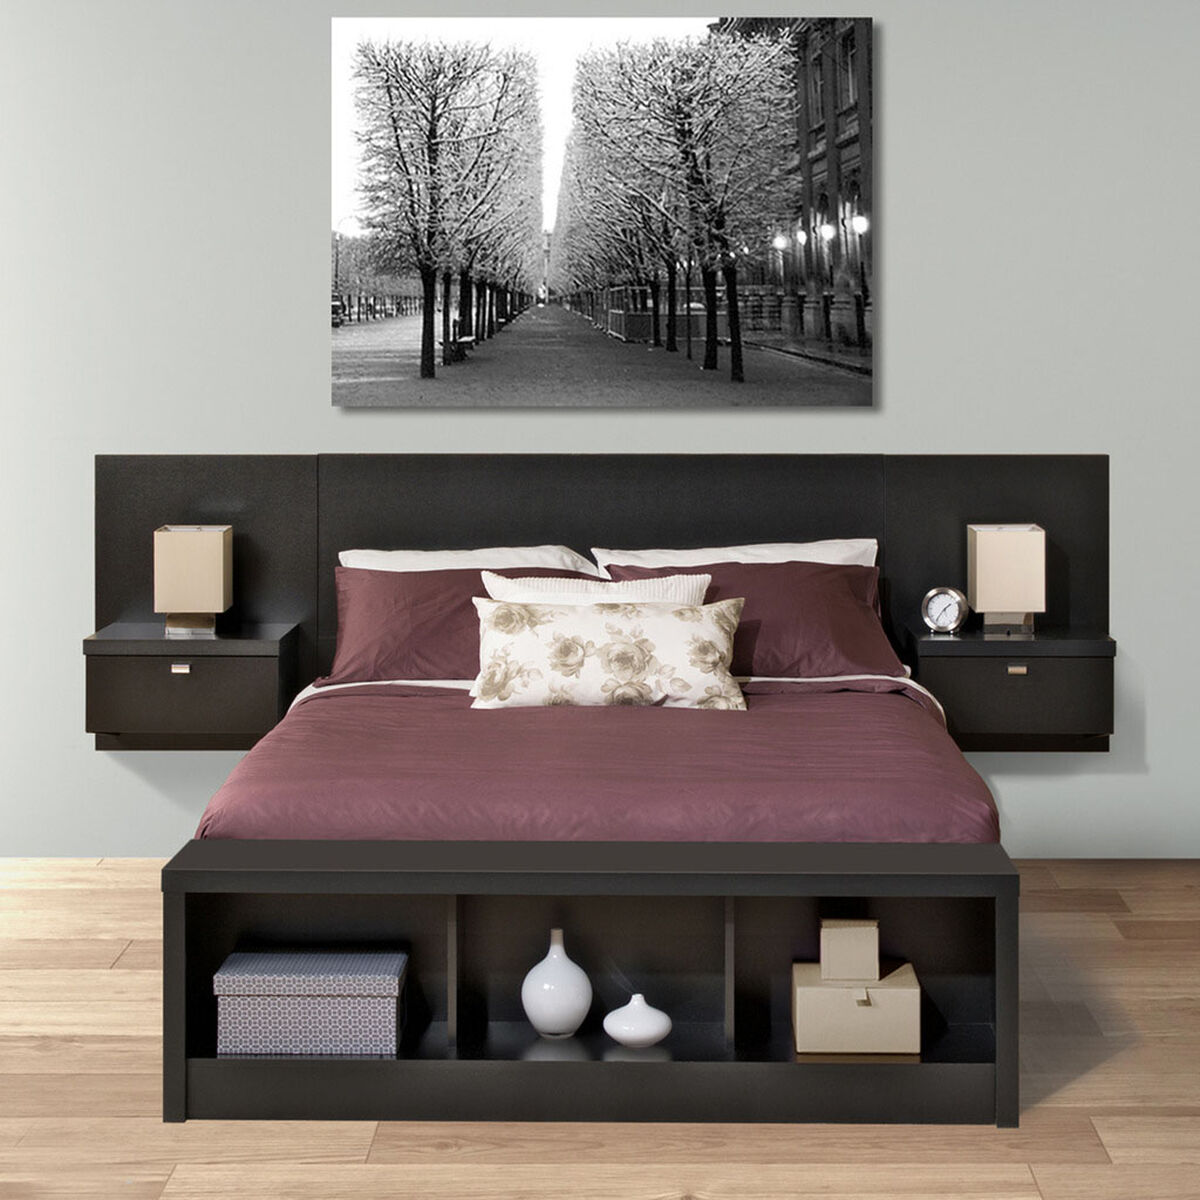 Our series 9 designer floating queen size headboard with attached nightstands black is on sale